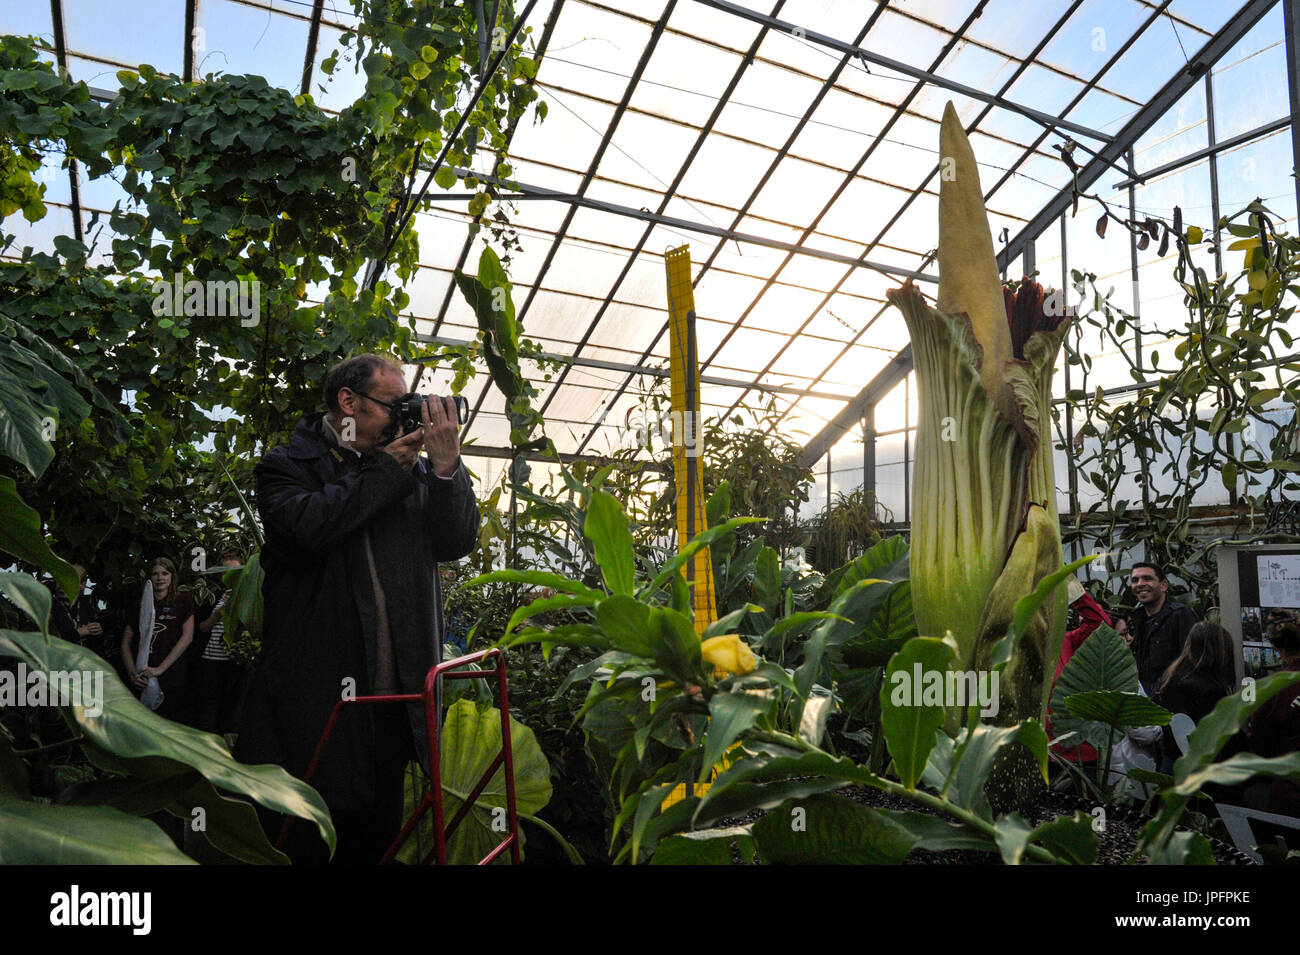 Edinburgh, UK. 01st Aug, 2017. An Amorphophallus, the worlds smelliest plant, blooms at the Royal Botanic Garden. Credit: Steven Scott Taylor/Alamy Live News - Stock Image